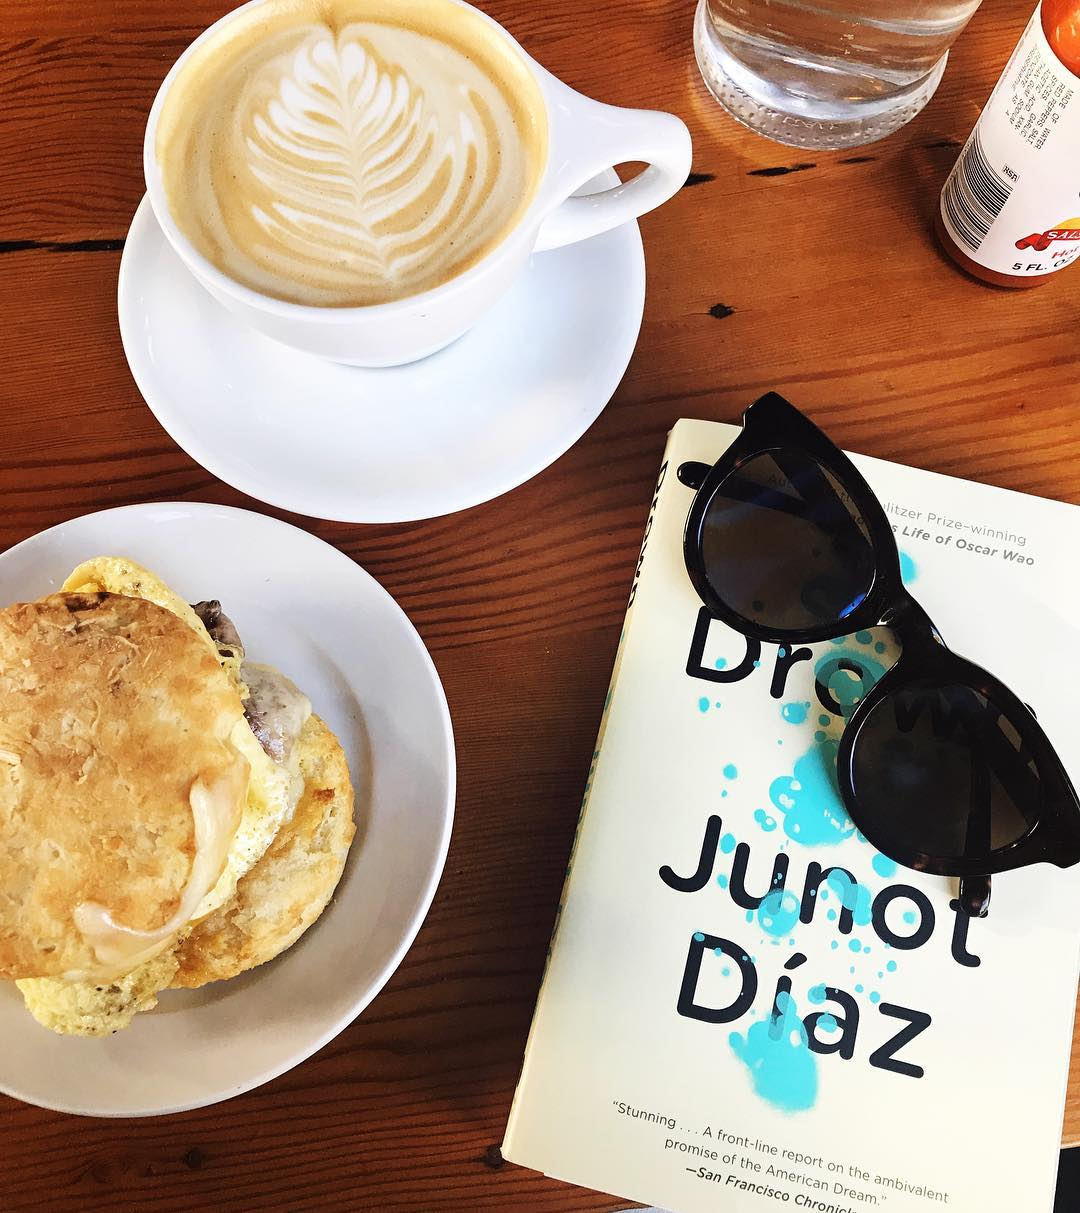 Junot Díaz's Drown and Coffee- 3 reasons why you should consider taking an Instagram break